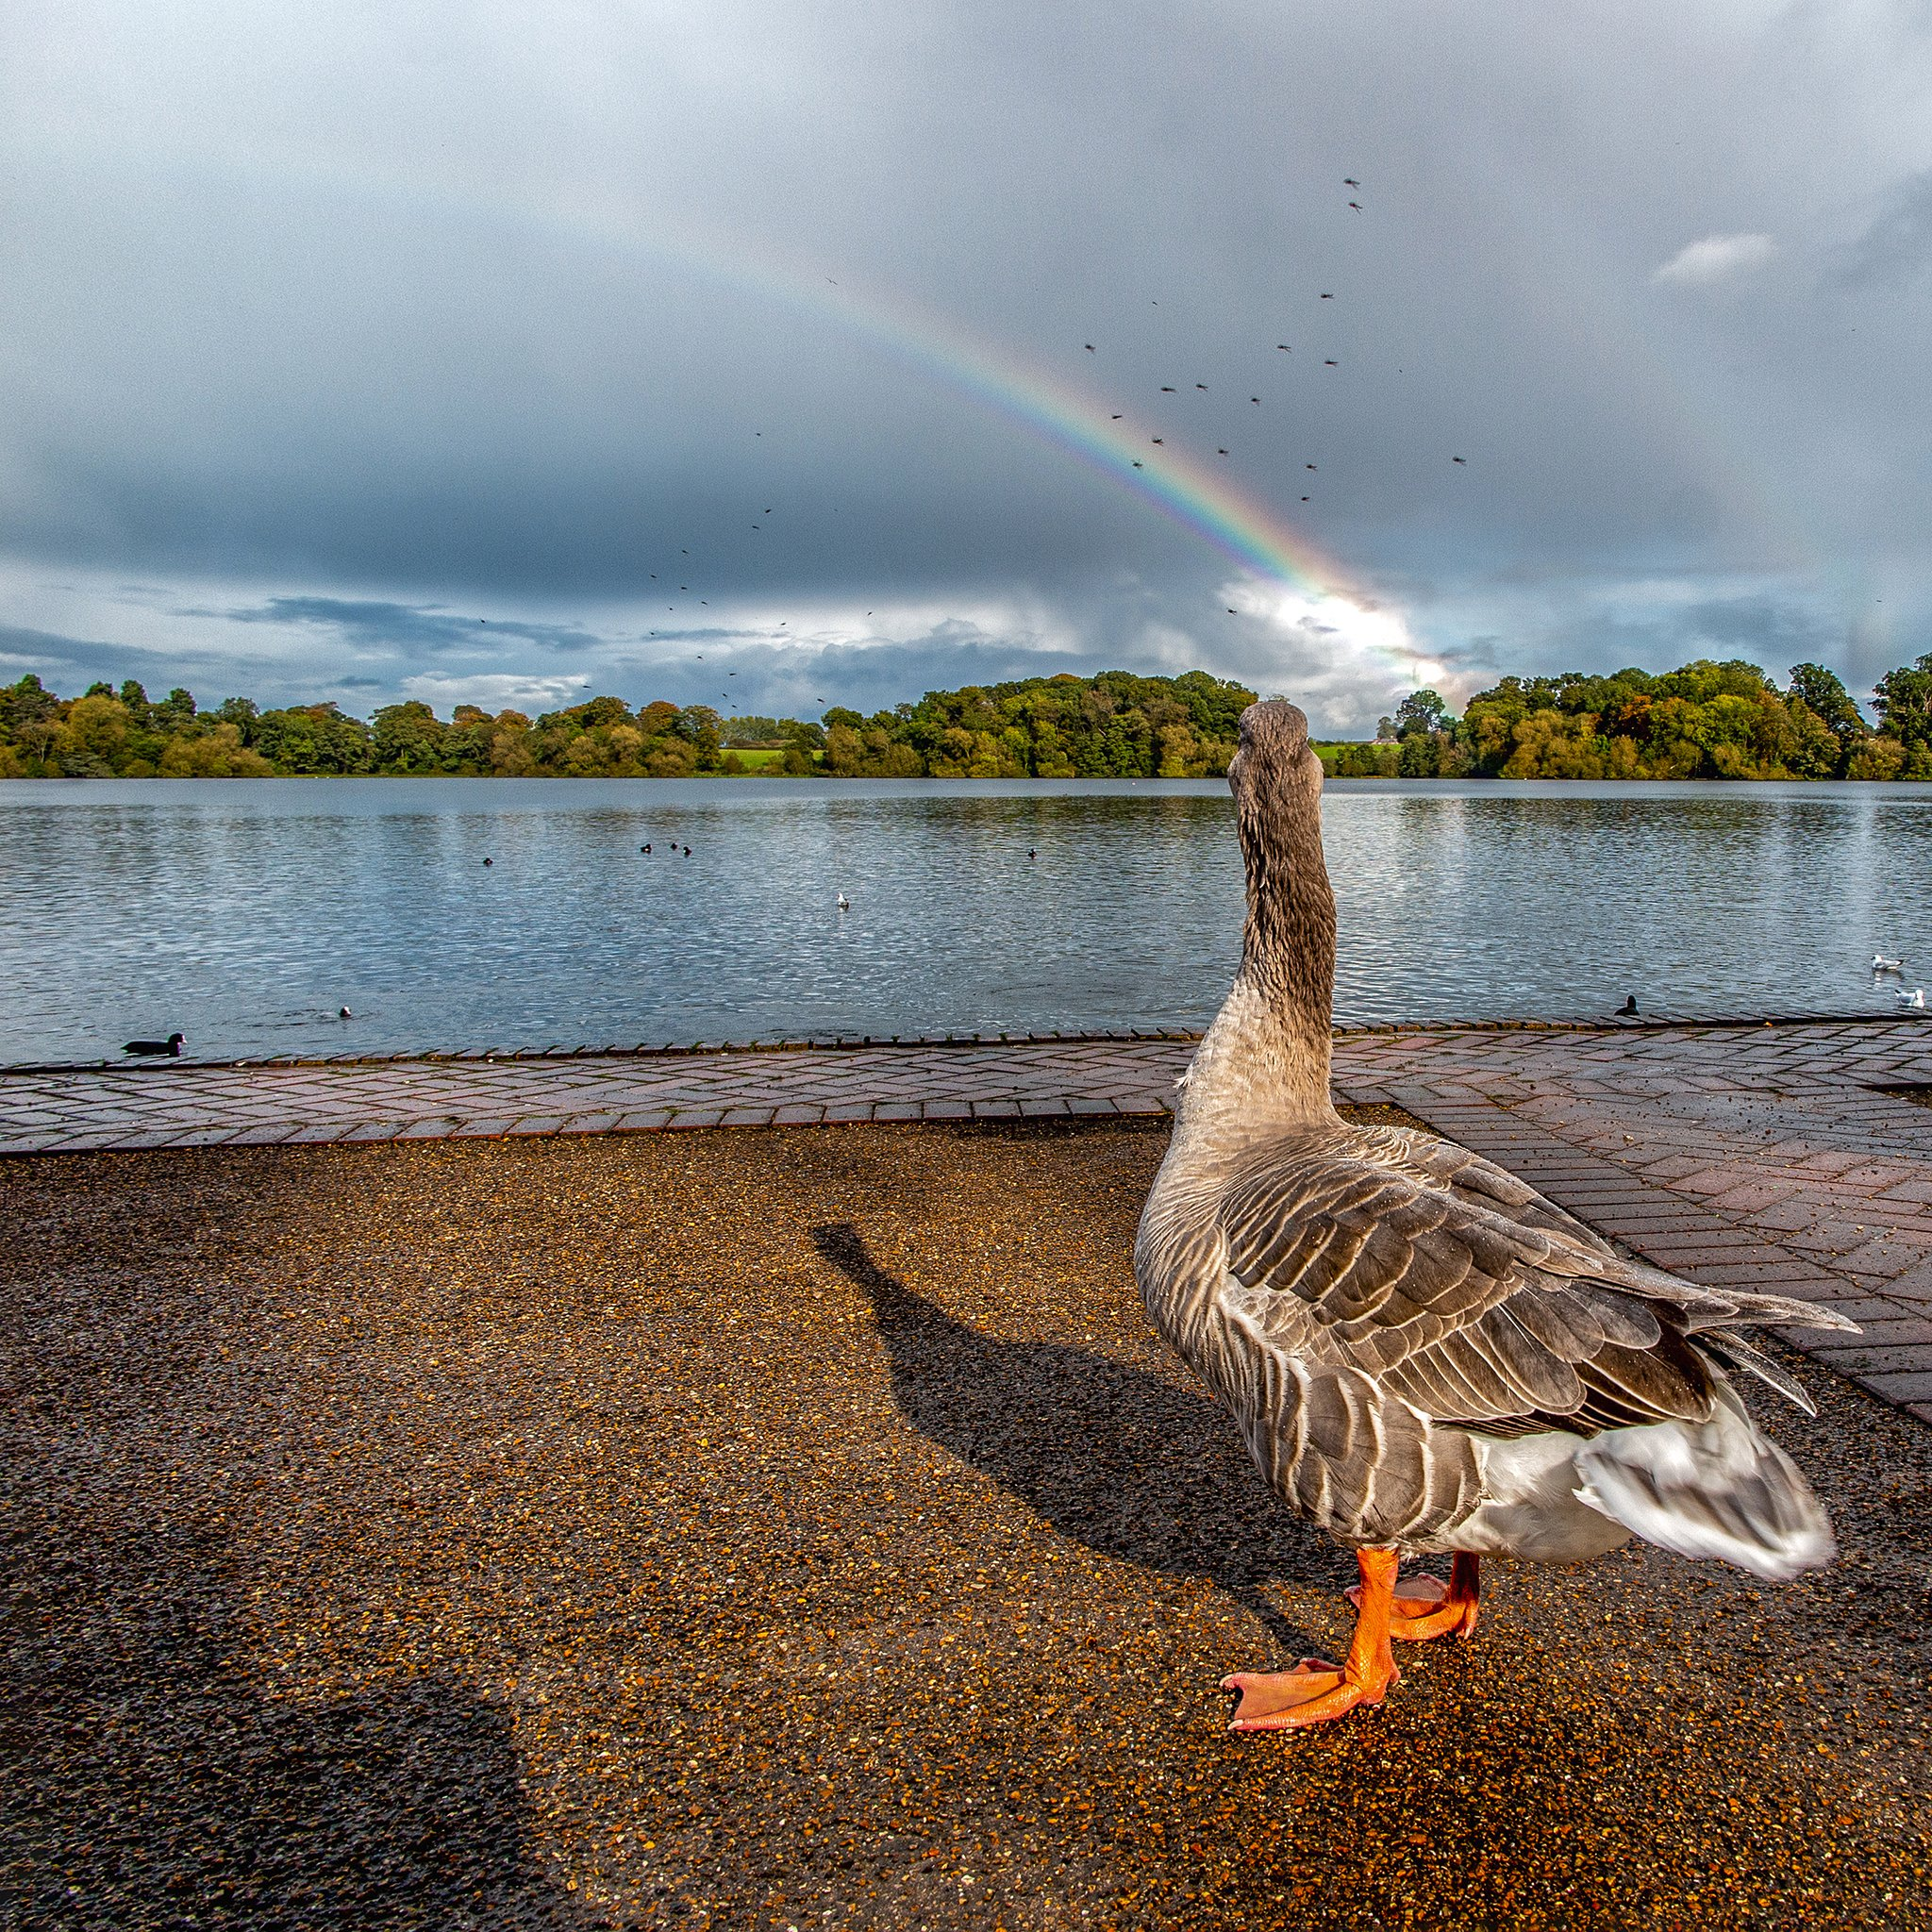 Rainbow Watching by The Mere  #ellesmere @VisitELLESMERE #mere #geese #rainbow https://t.co/TqLhUu4r0D